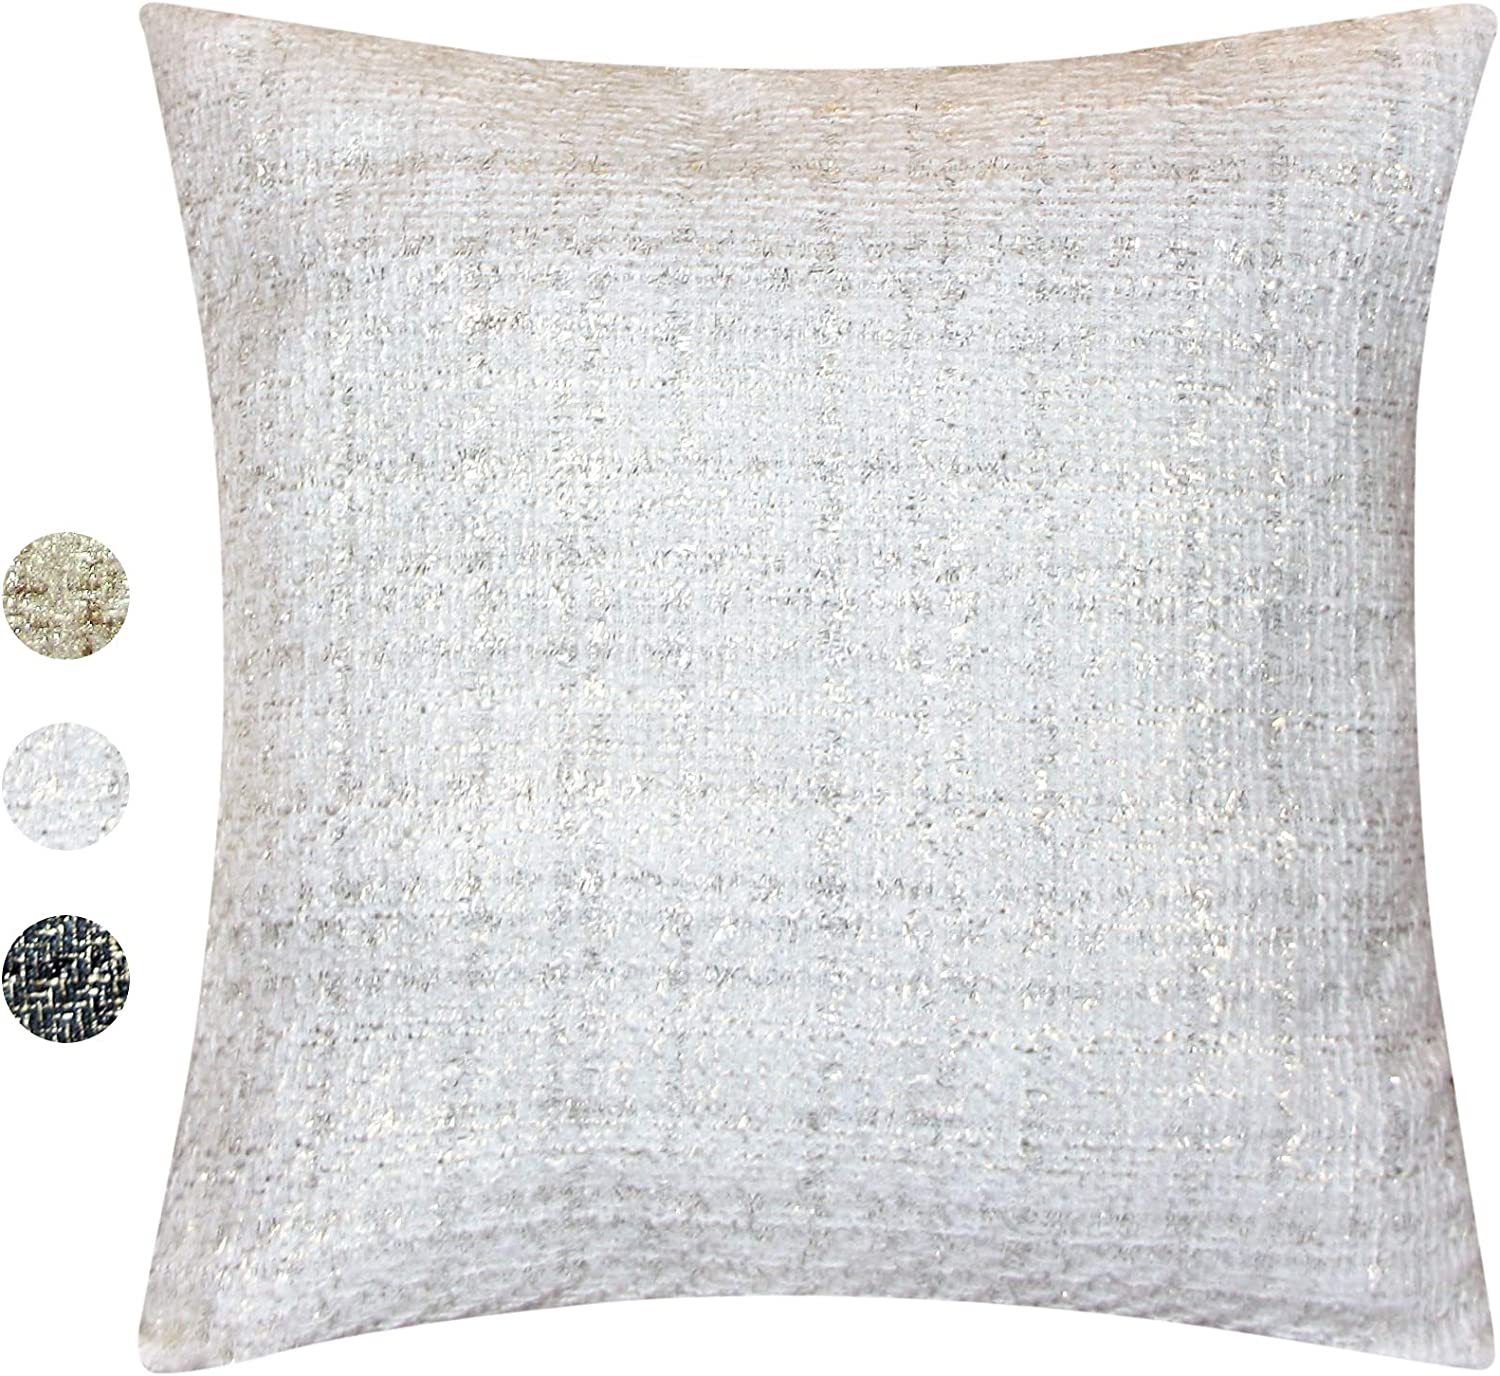 Holiday Christmas Tweed Decorative Pillow Cover – Throw Pillow Cover with Gold Metallic Finish – Cottage Home Décor Pillow Case – 18 x 18 Inch Farmhouse Rustic Cushion Cover, Ivory / Gold